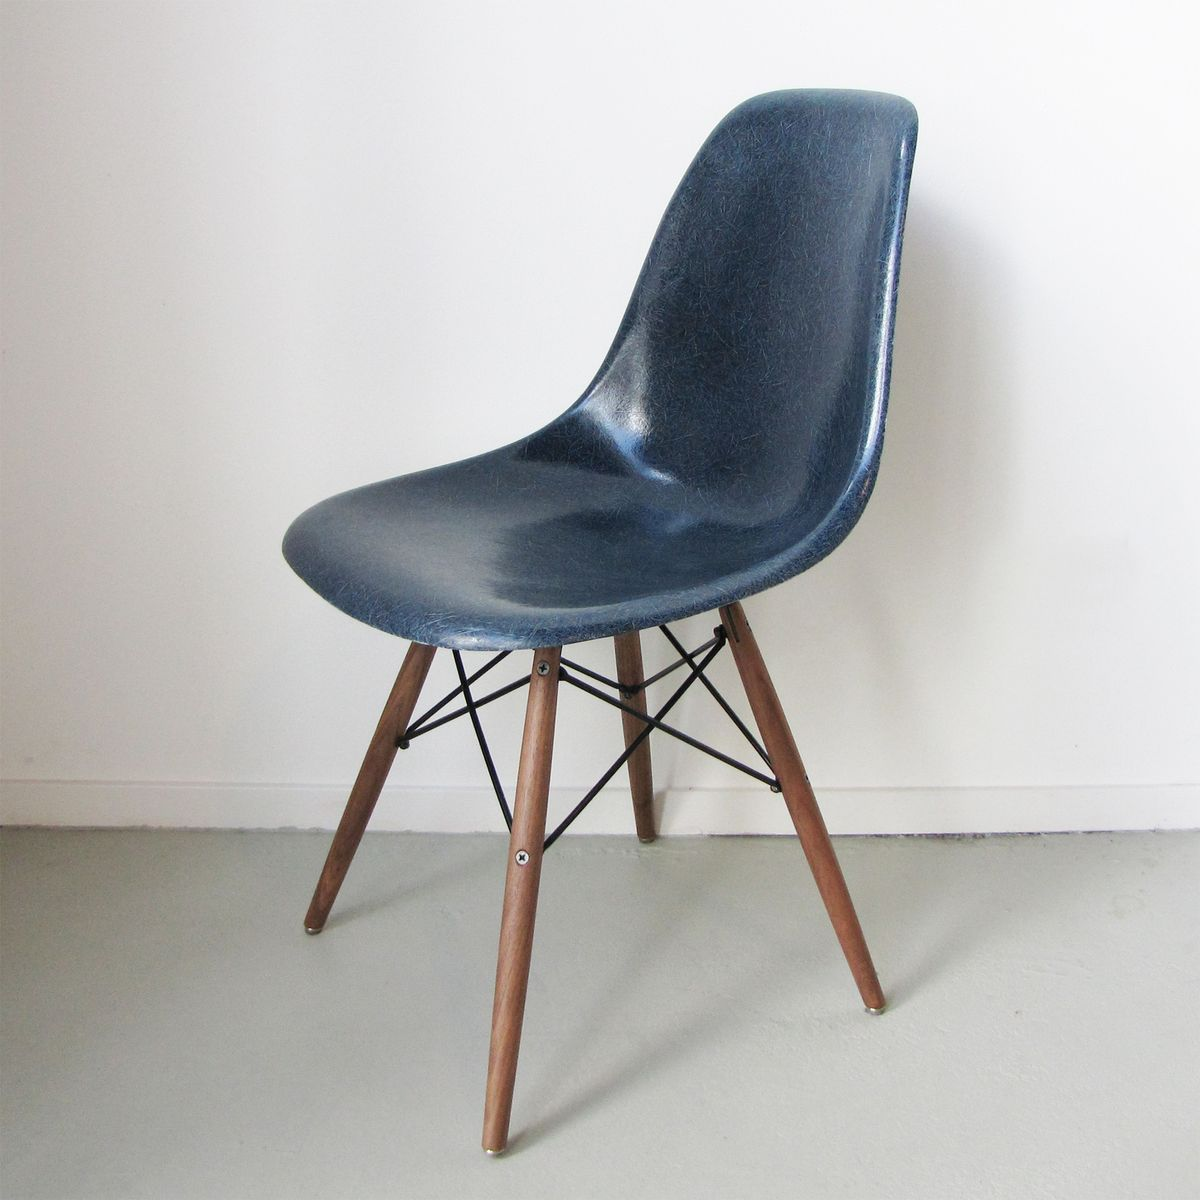 dsw chair by charles ray eames for herman miller usa 1975 for sale at pamono. Black Bedroom Furniture Sets. Home Design Ideas